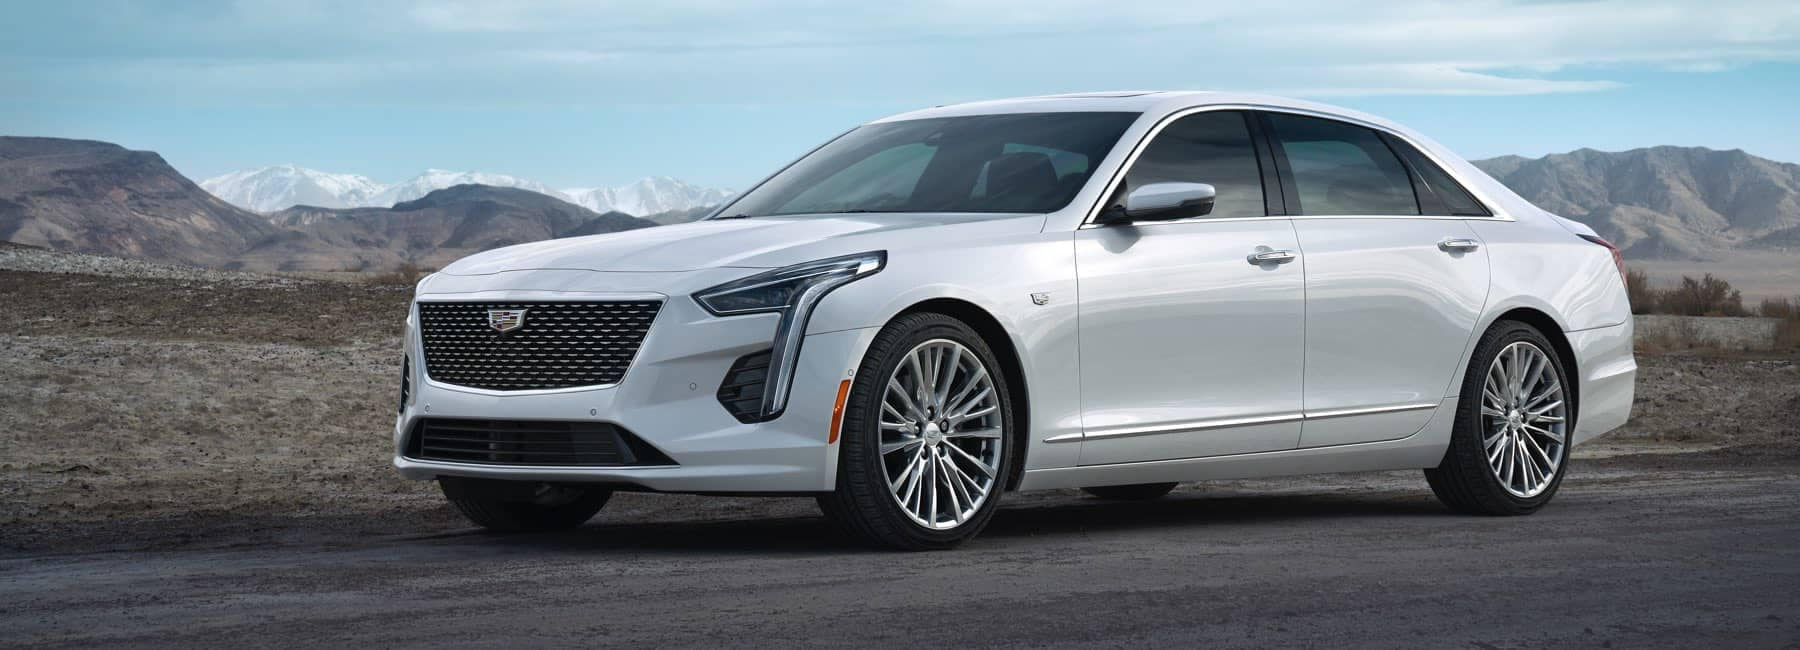 2020 Cadillac CT6 driving down road with mountains in background